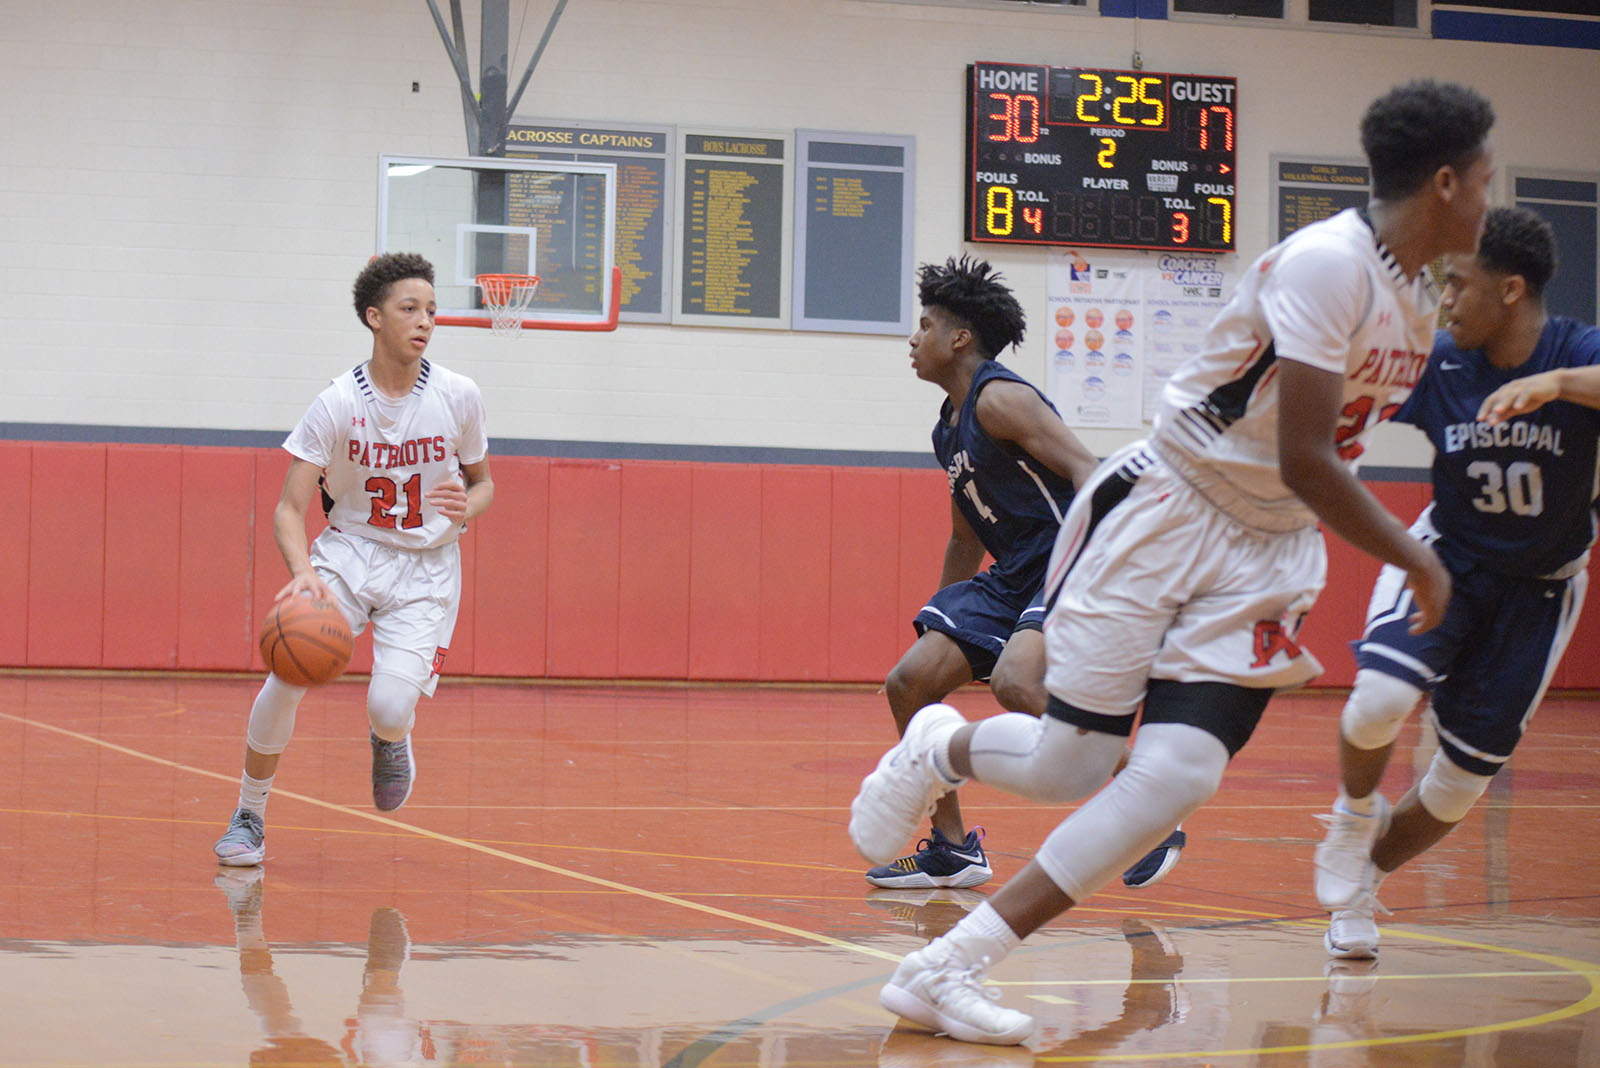 Boys Basketball: Defense is Key in Win Over Penn Charter